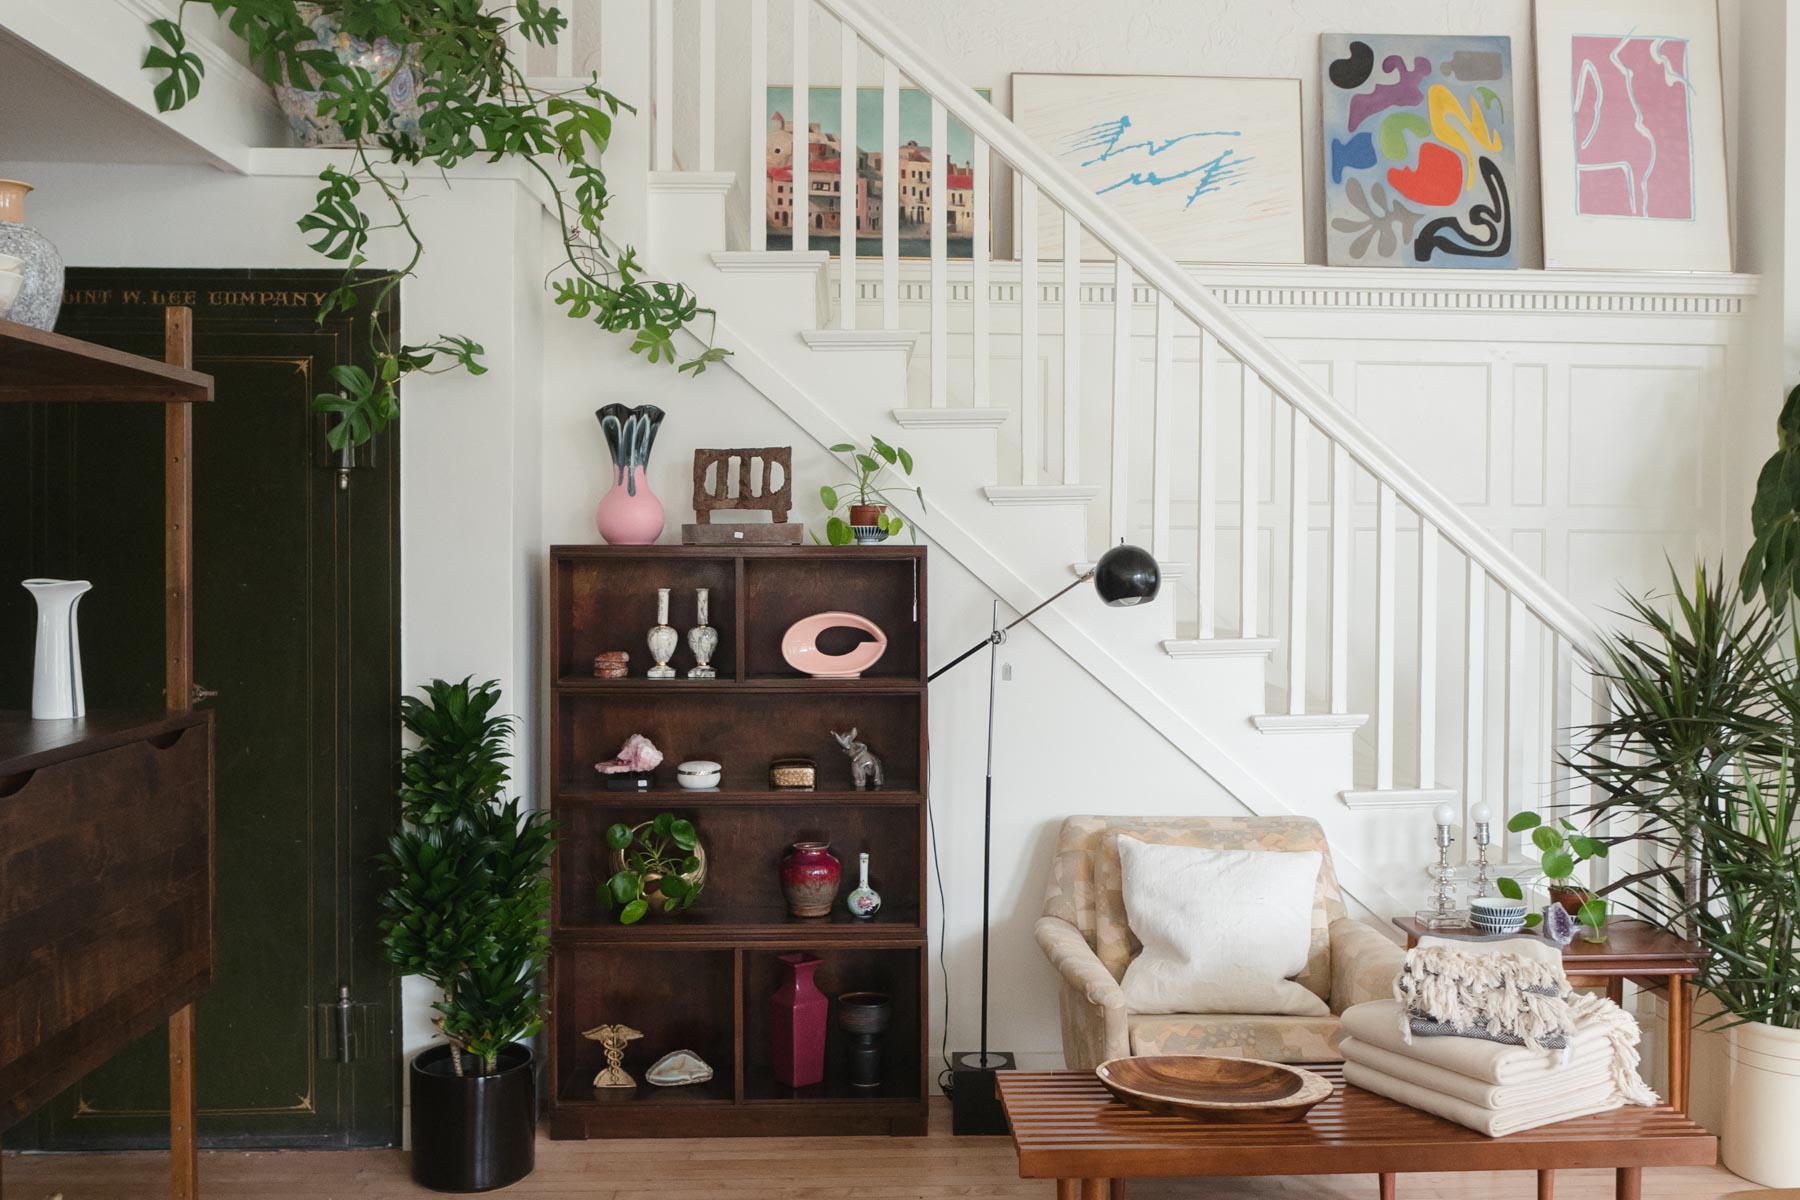 nz in co awstores shelving modular unit australia tag system bookcase colorful systems bookshelf